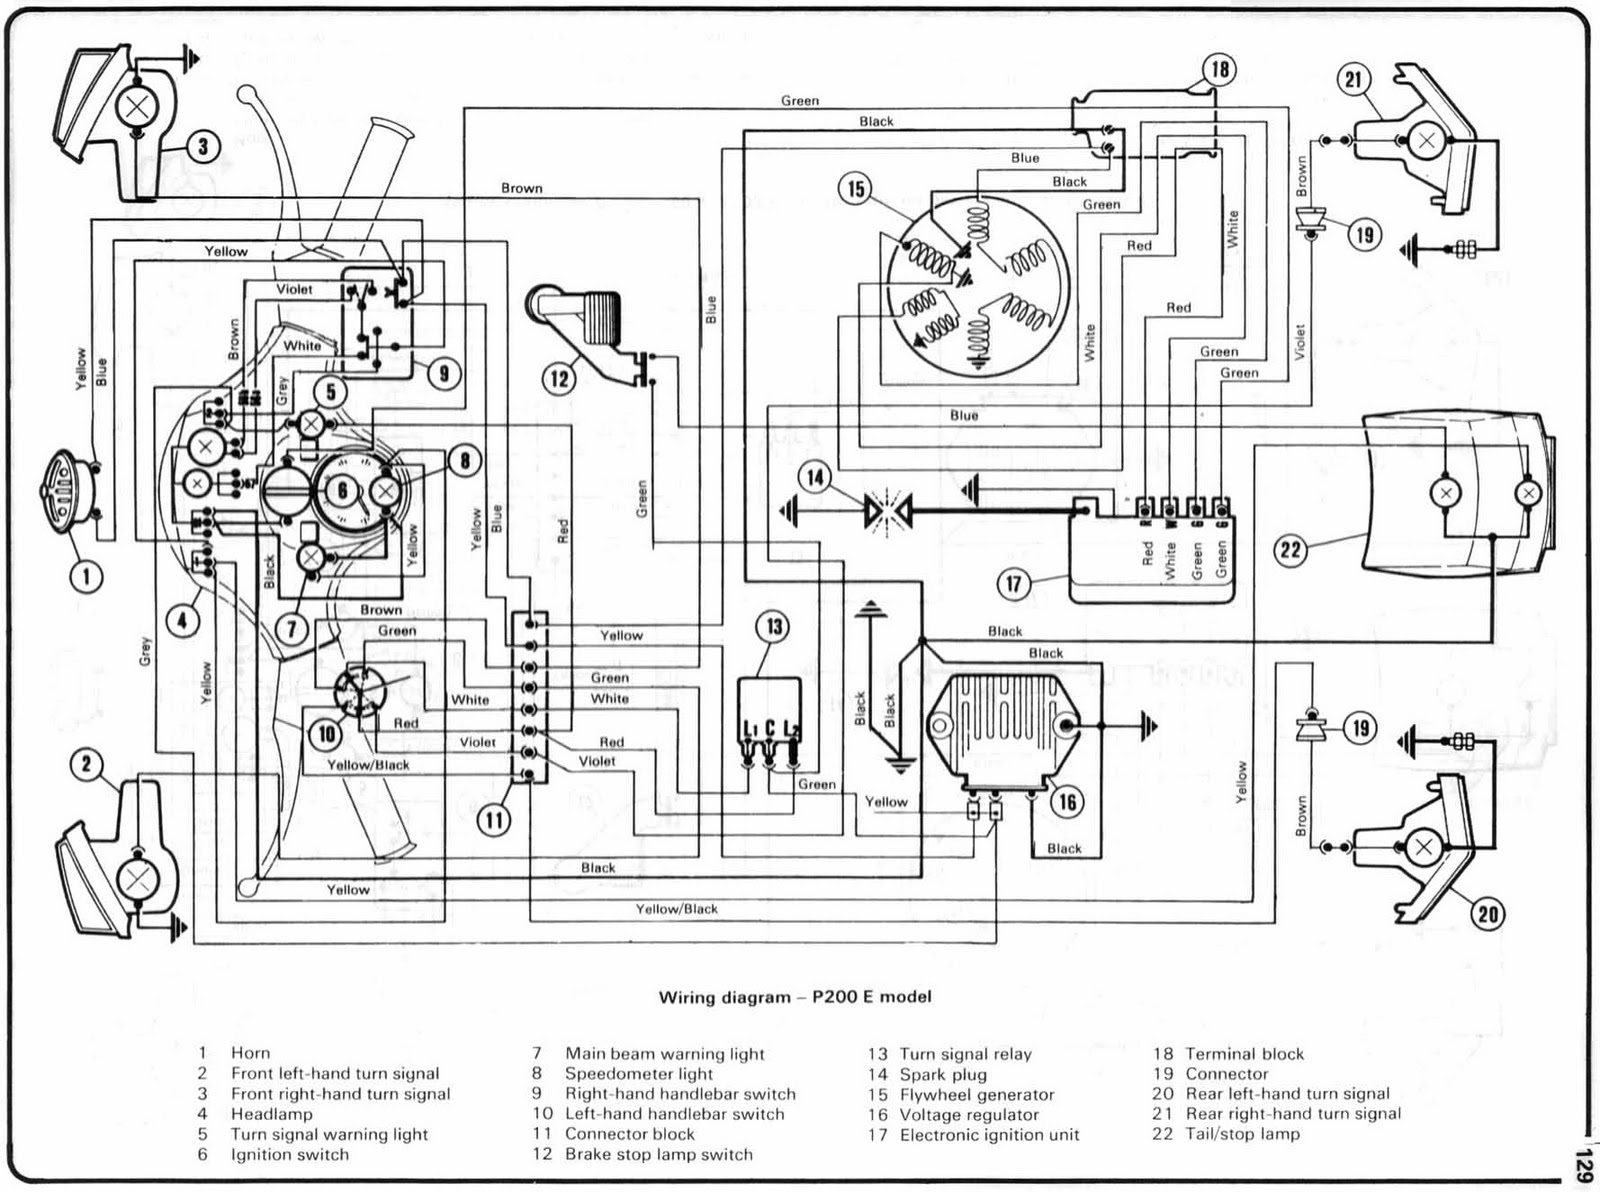 Wiring Diagram For 2004 Mercury Monterey, Wiring, Free